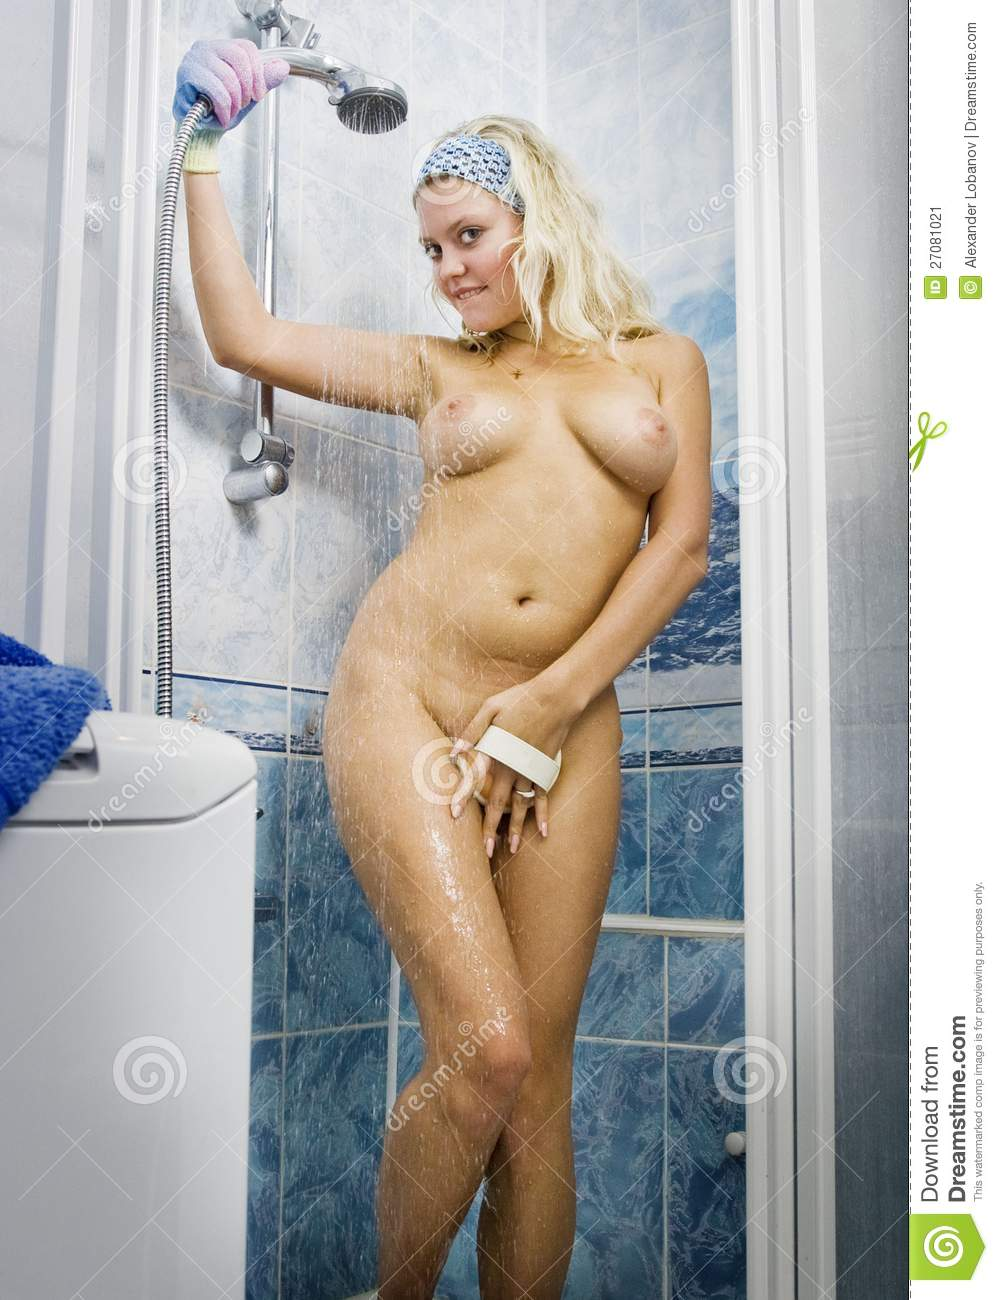 Women Nude In The Shower 6